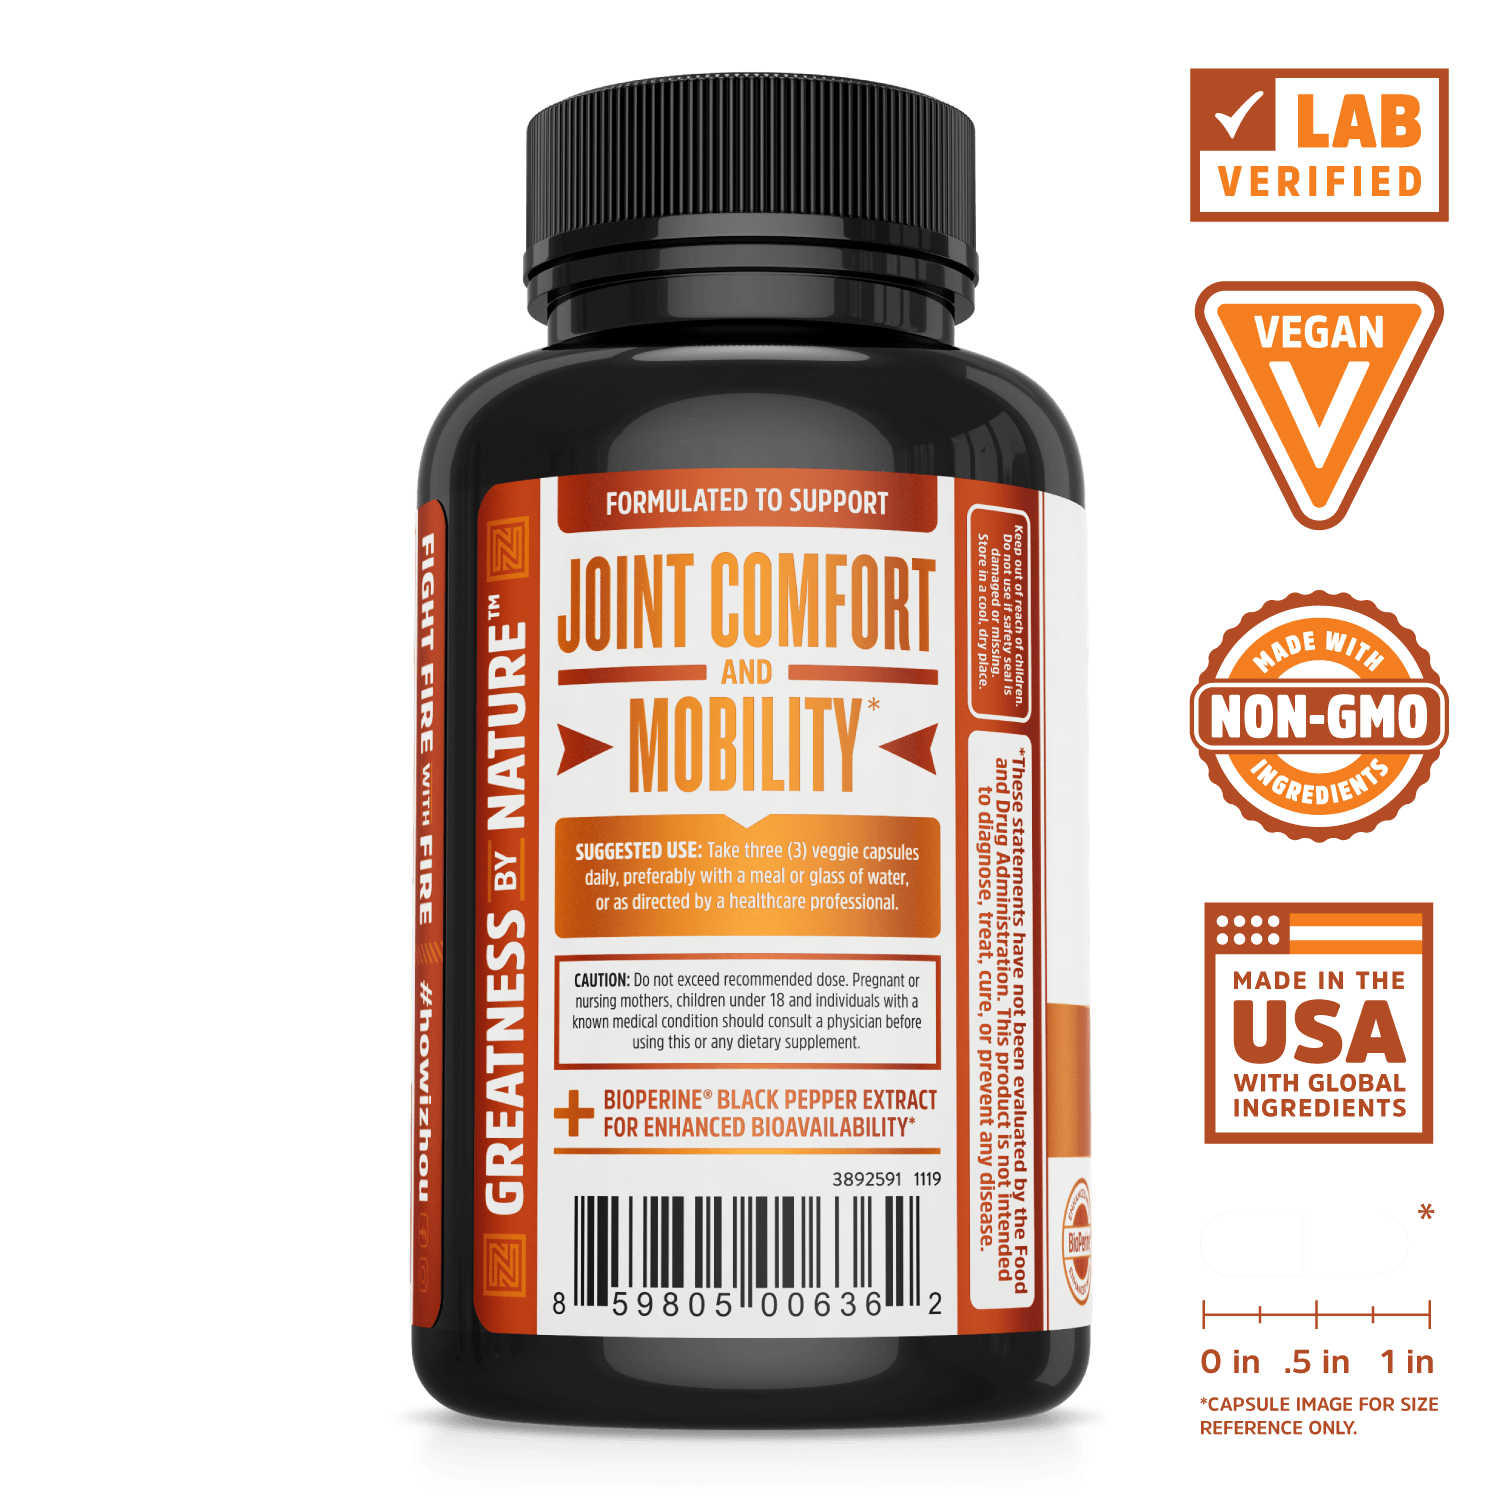 Zhou Nutrition Turmeric Curcumin with 95% Standardized Curcuminoids. Bottle side. Lab verified, vegan, made with non-GMO ingredients, made in the USA with global ingredients.